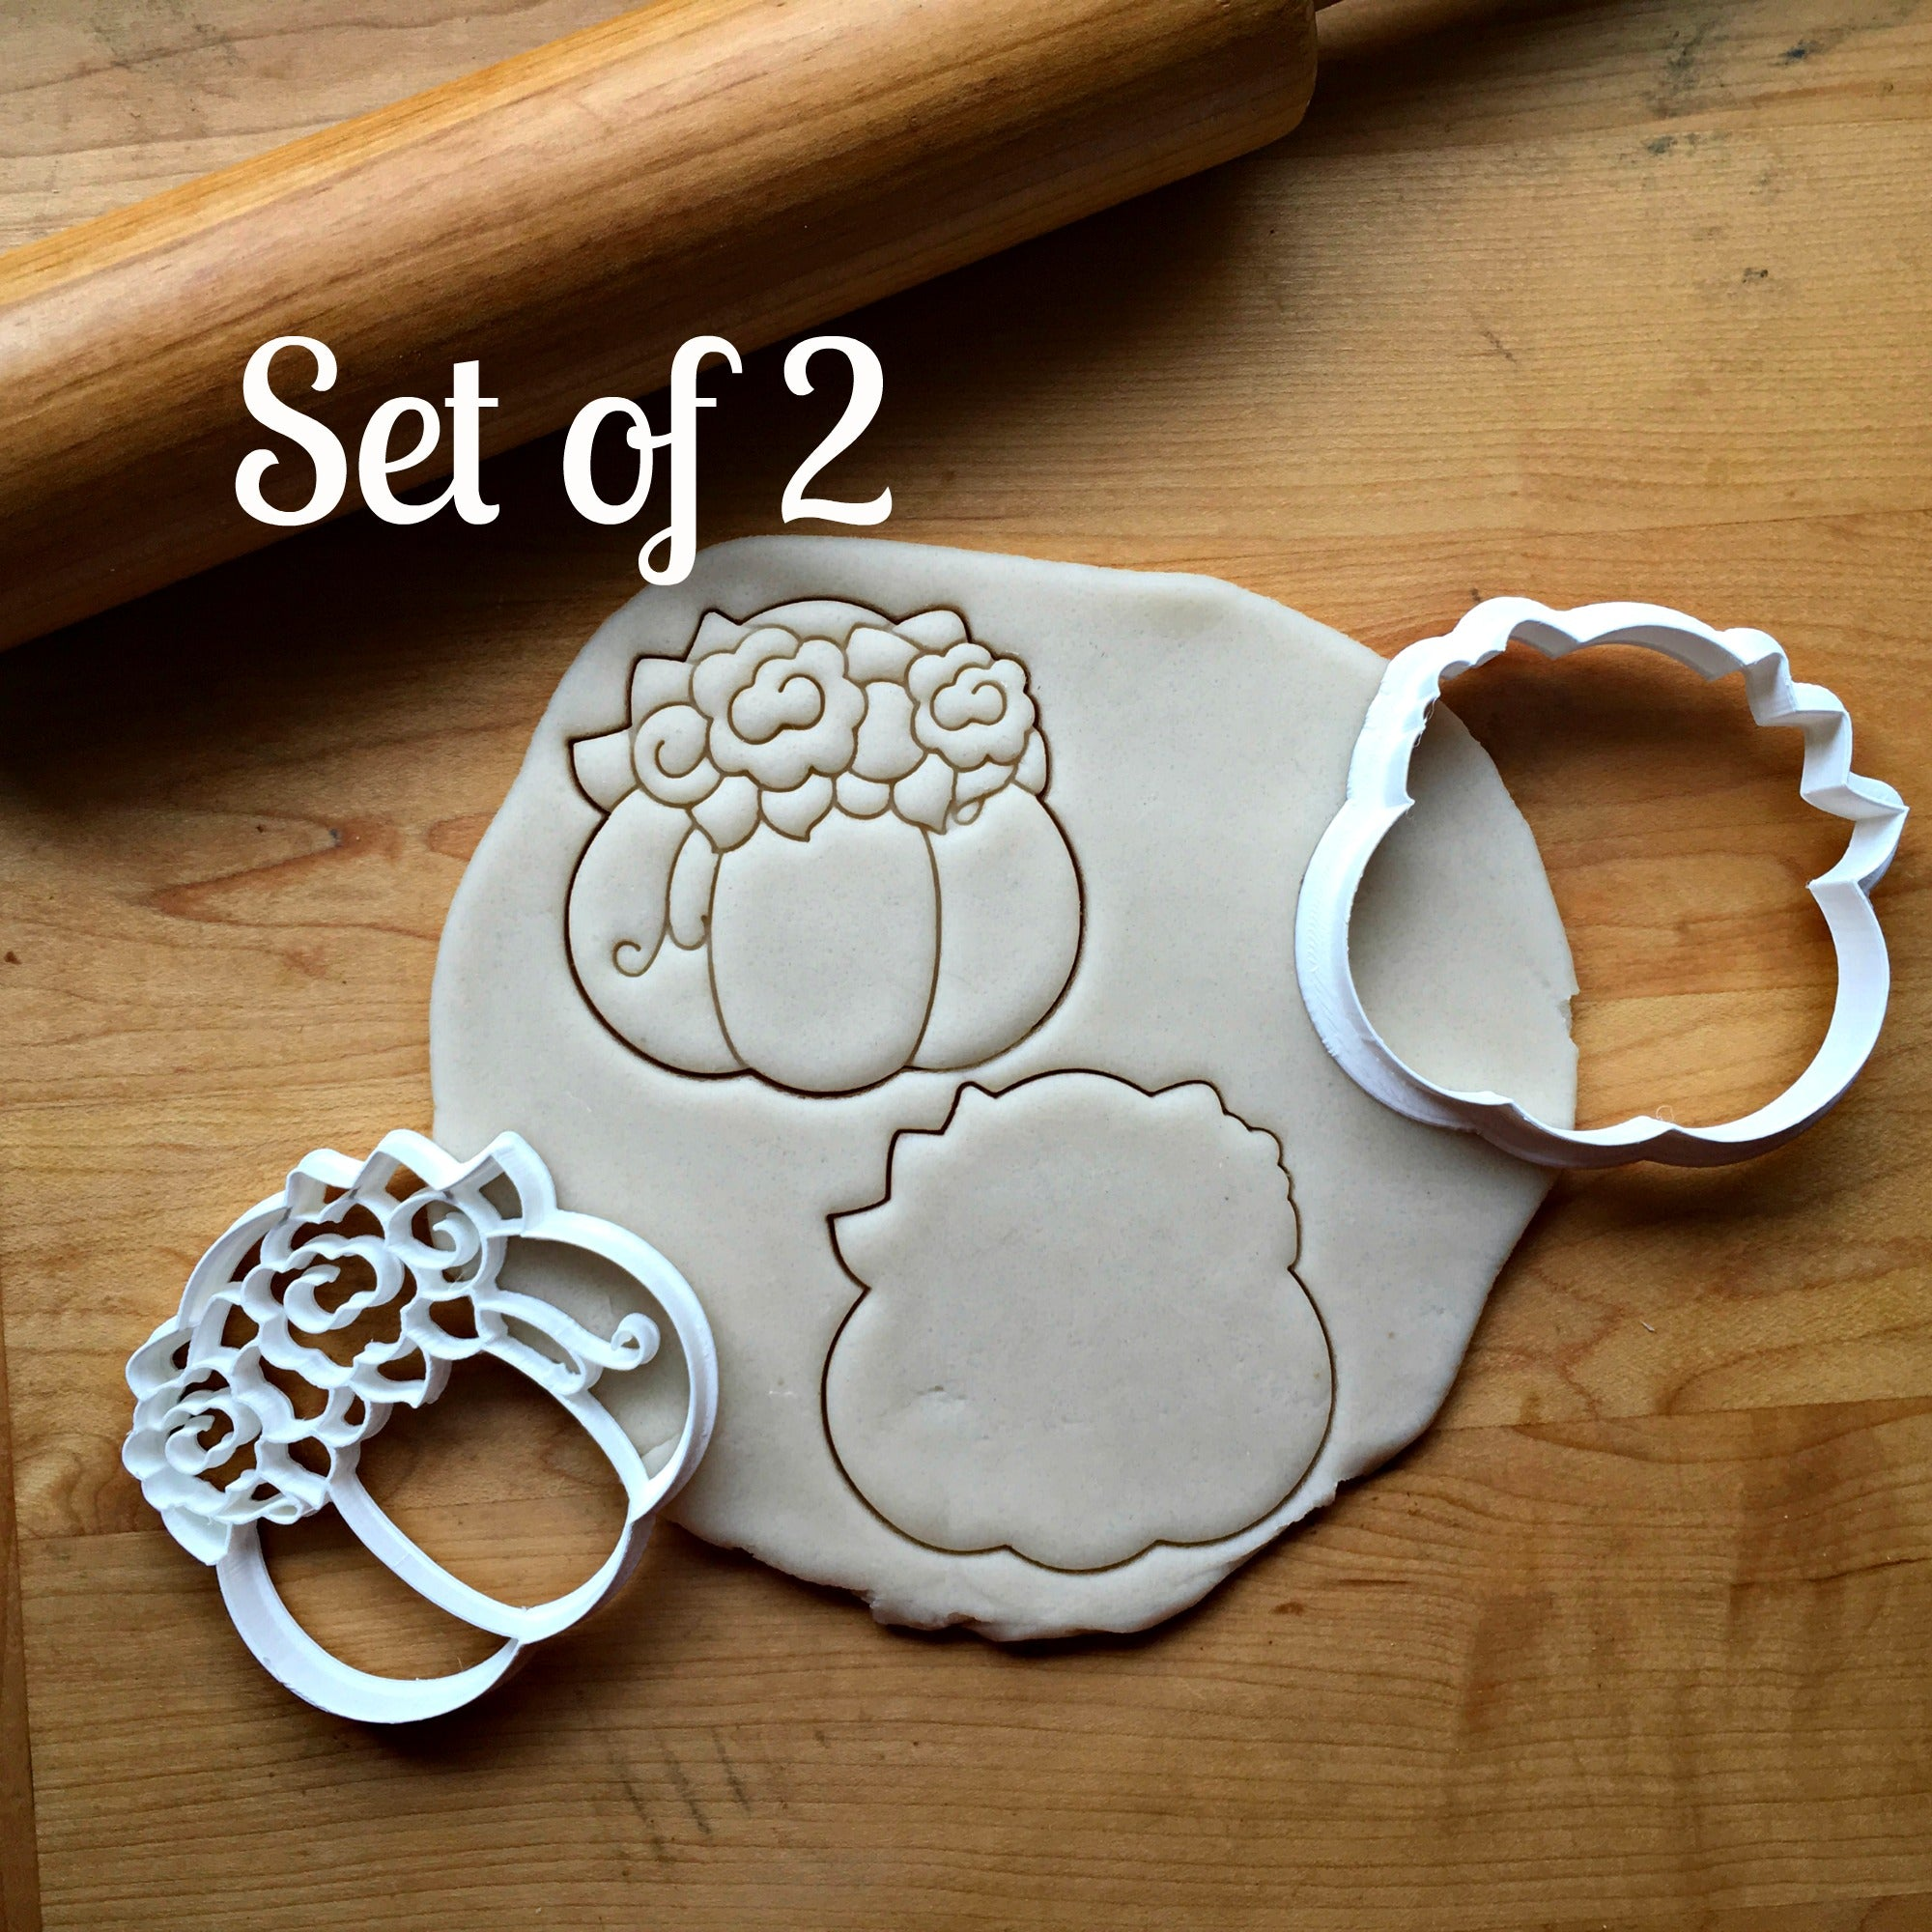 Set of 2 Pumpkin with Flowers Cookie Cutters/Dishwasher Safe